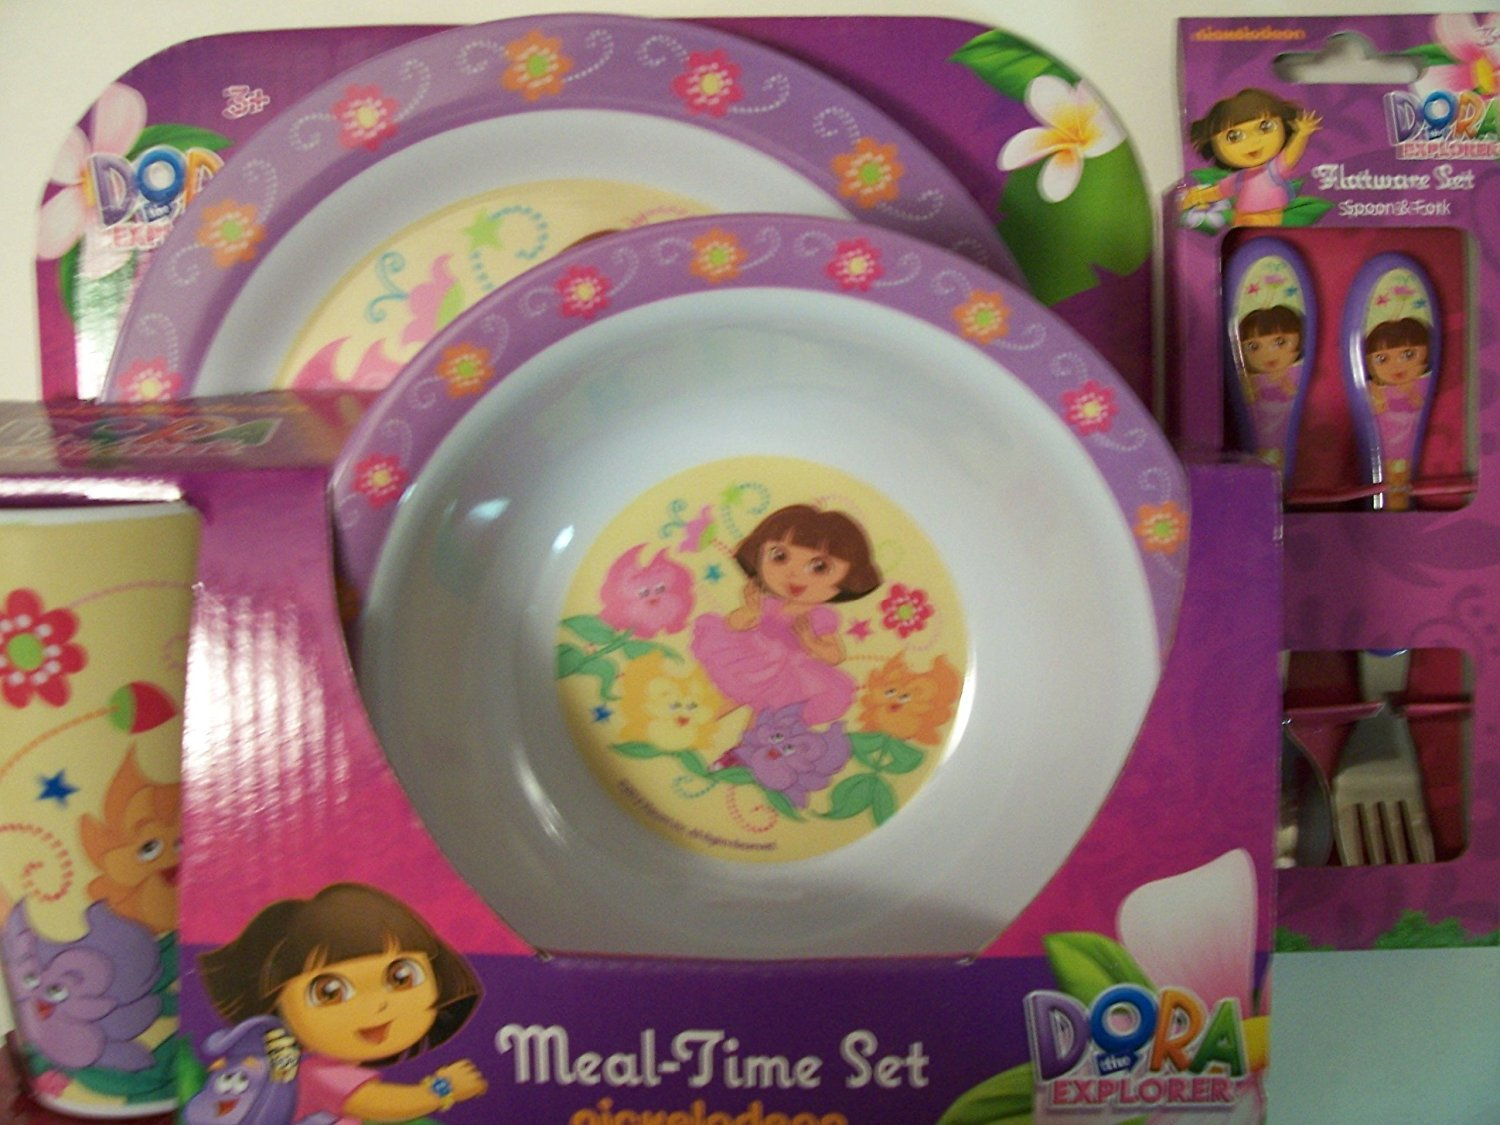 Dora the Explorer 5 Piece KCARE Dining Set ~ Plate, Bowl, Cup, Fork, Spoon (Dora with Talking Flowers) by KCare   B00CRRCEDU